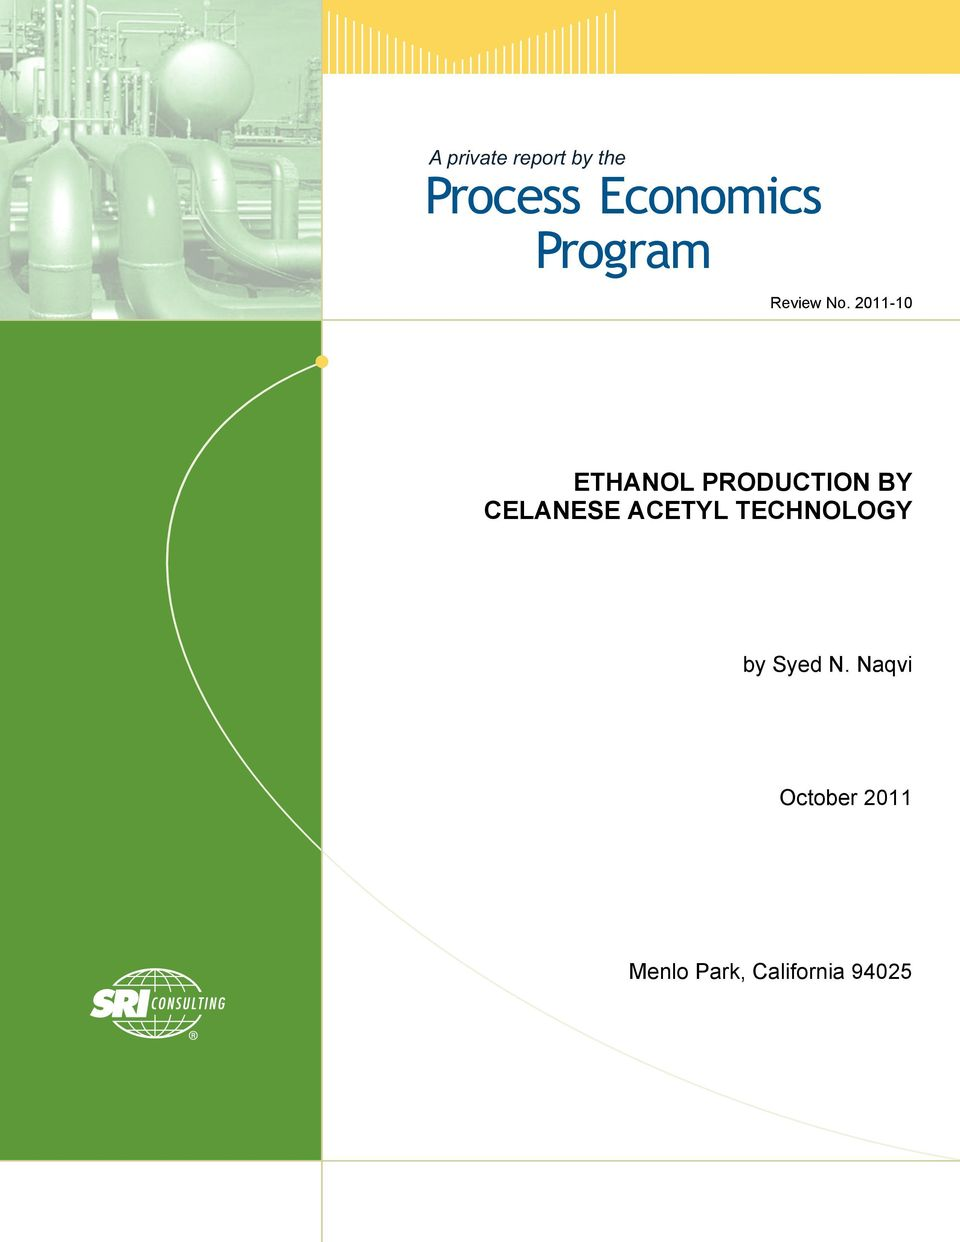 2011-10 ETHANOL PRODUCTION BY CELANESE